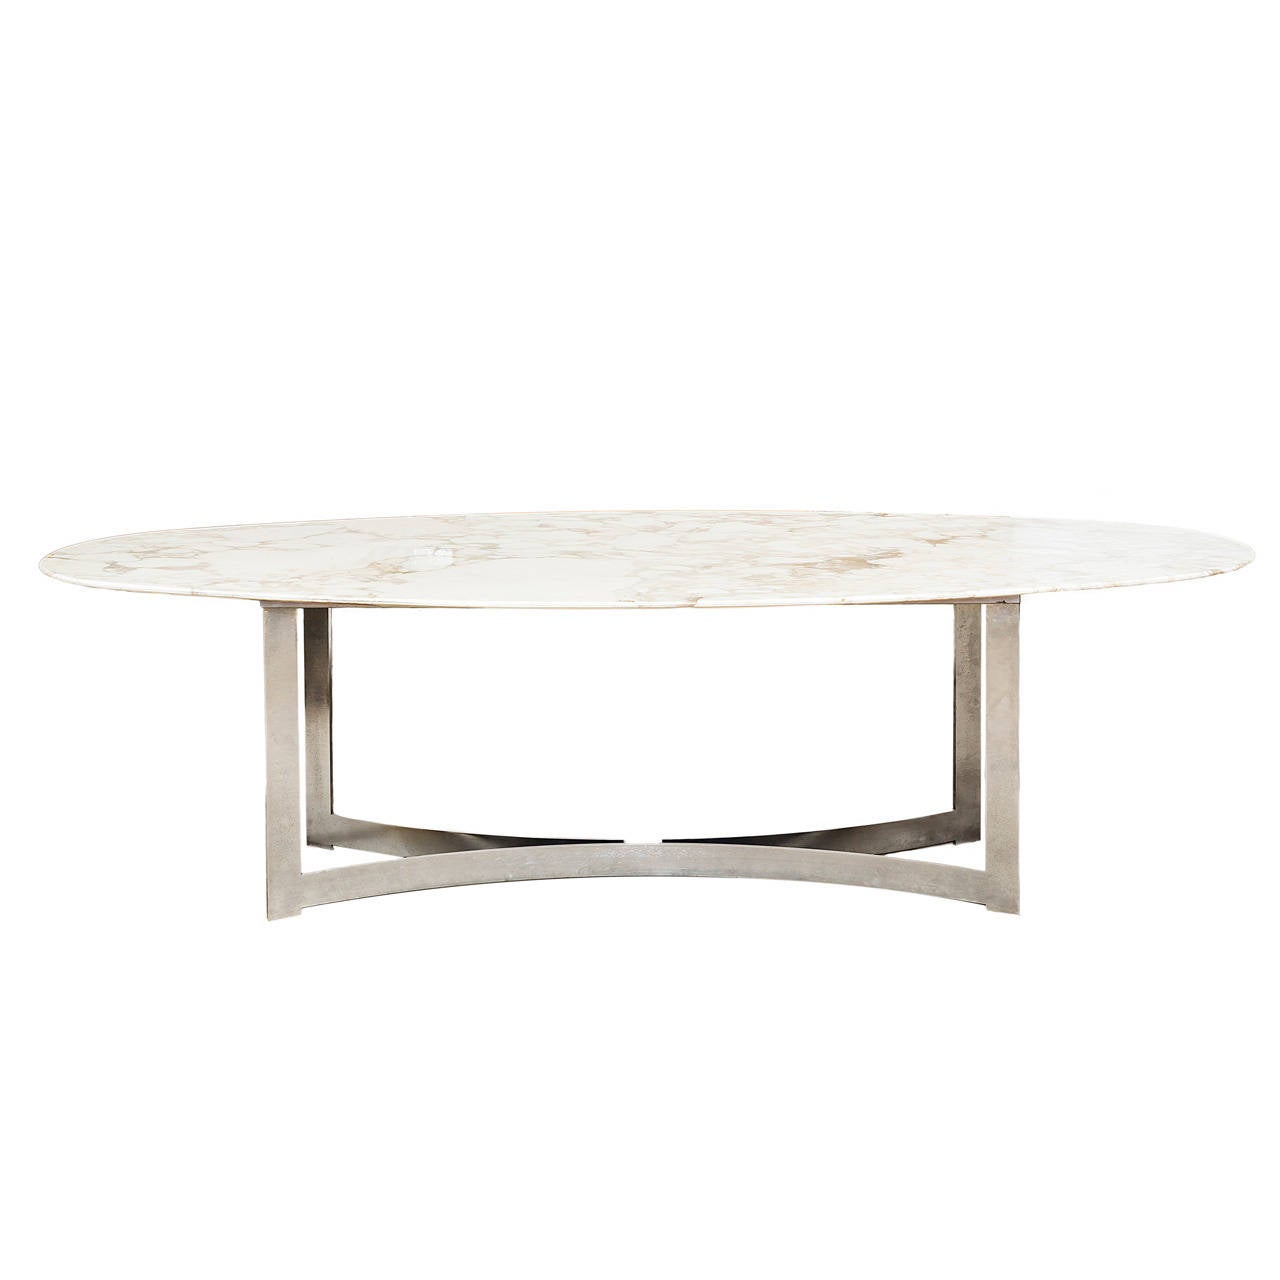 Oval marble top dining table at 1stdibs for Marble top dining table